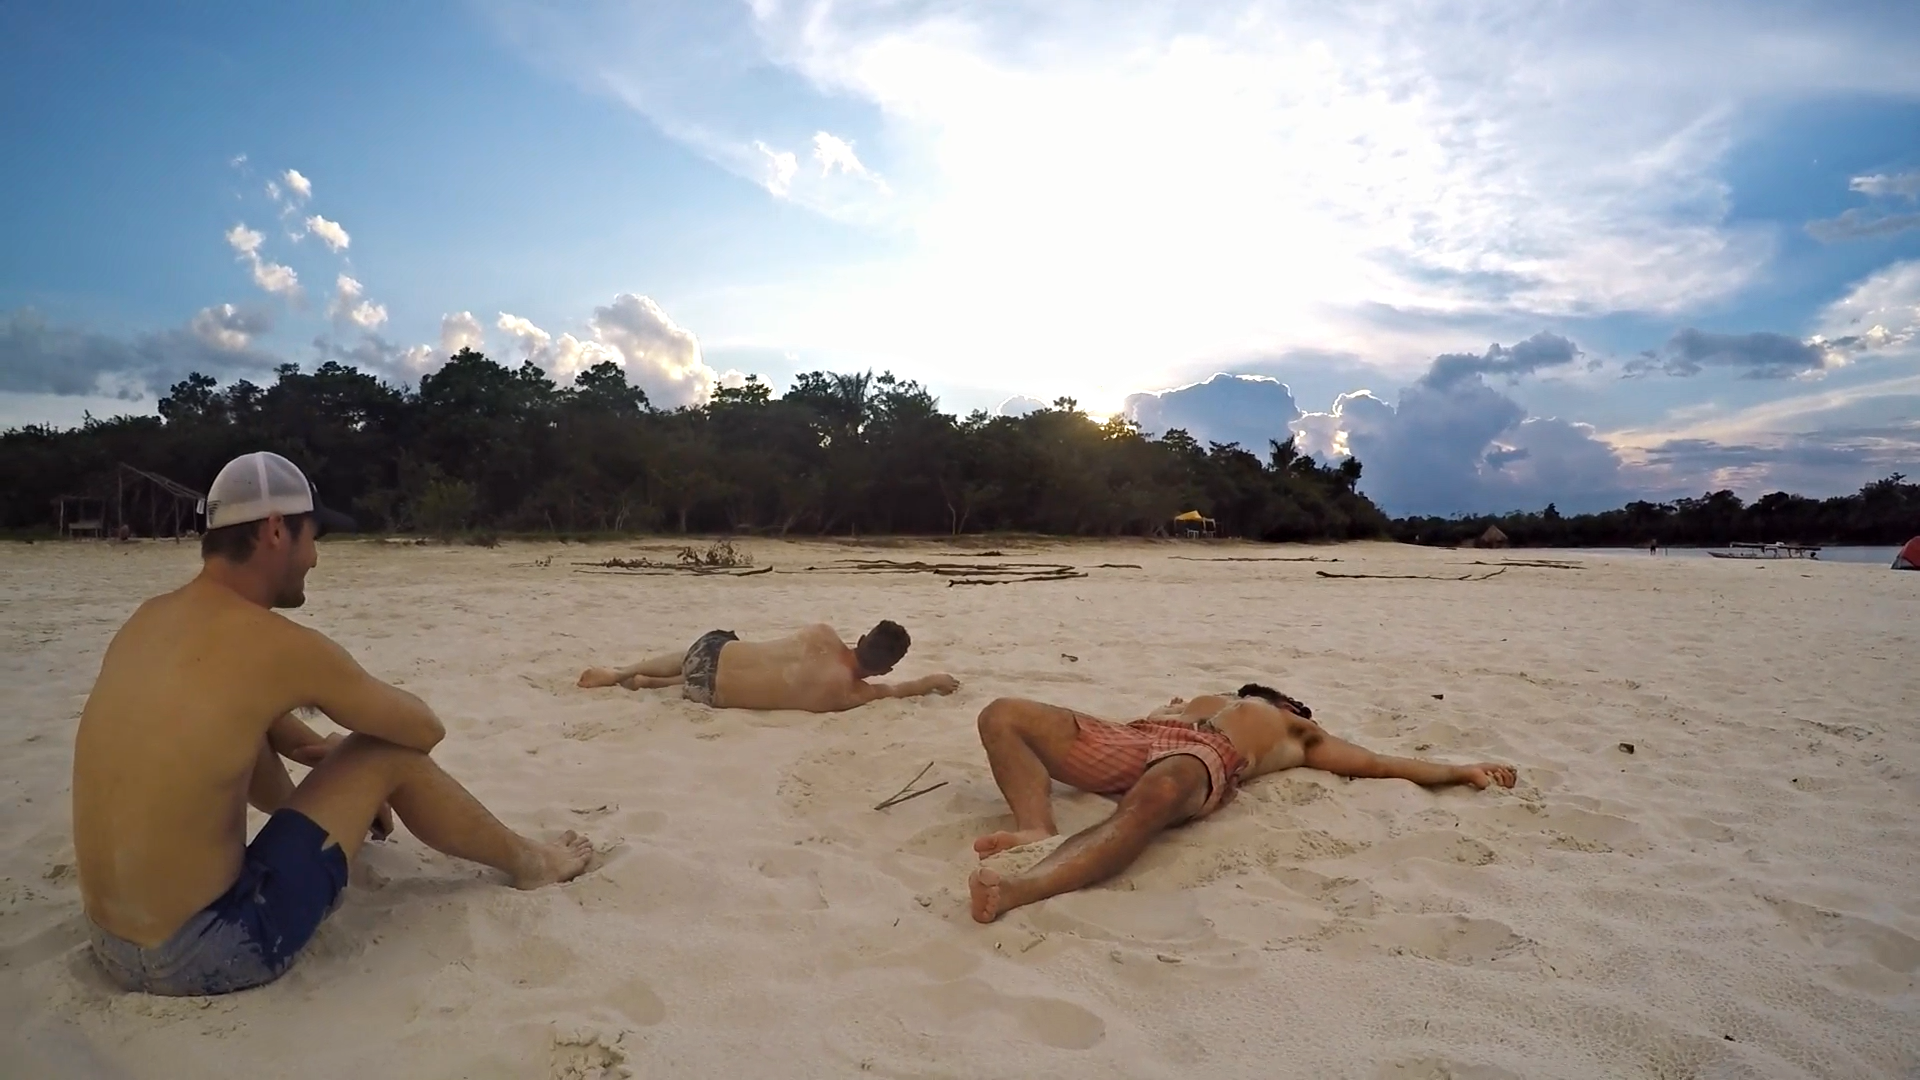 Rich looking on, as Jonathan and Peter's bodies melt into the sand, their minds dissolving into the cosmos.